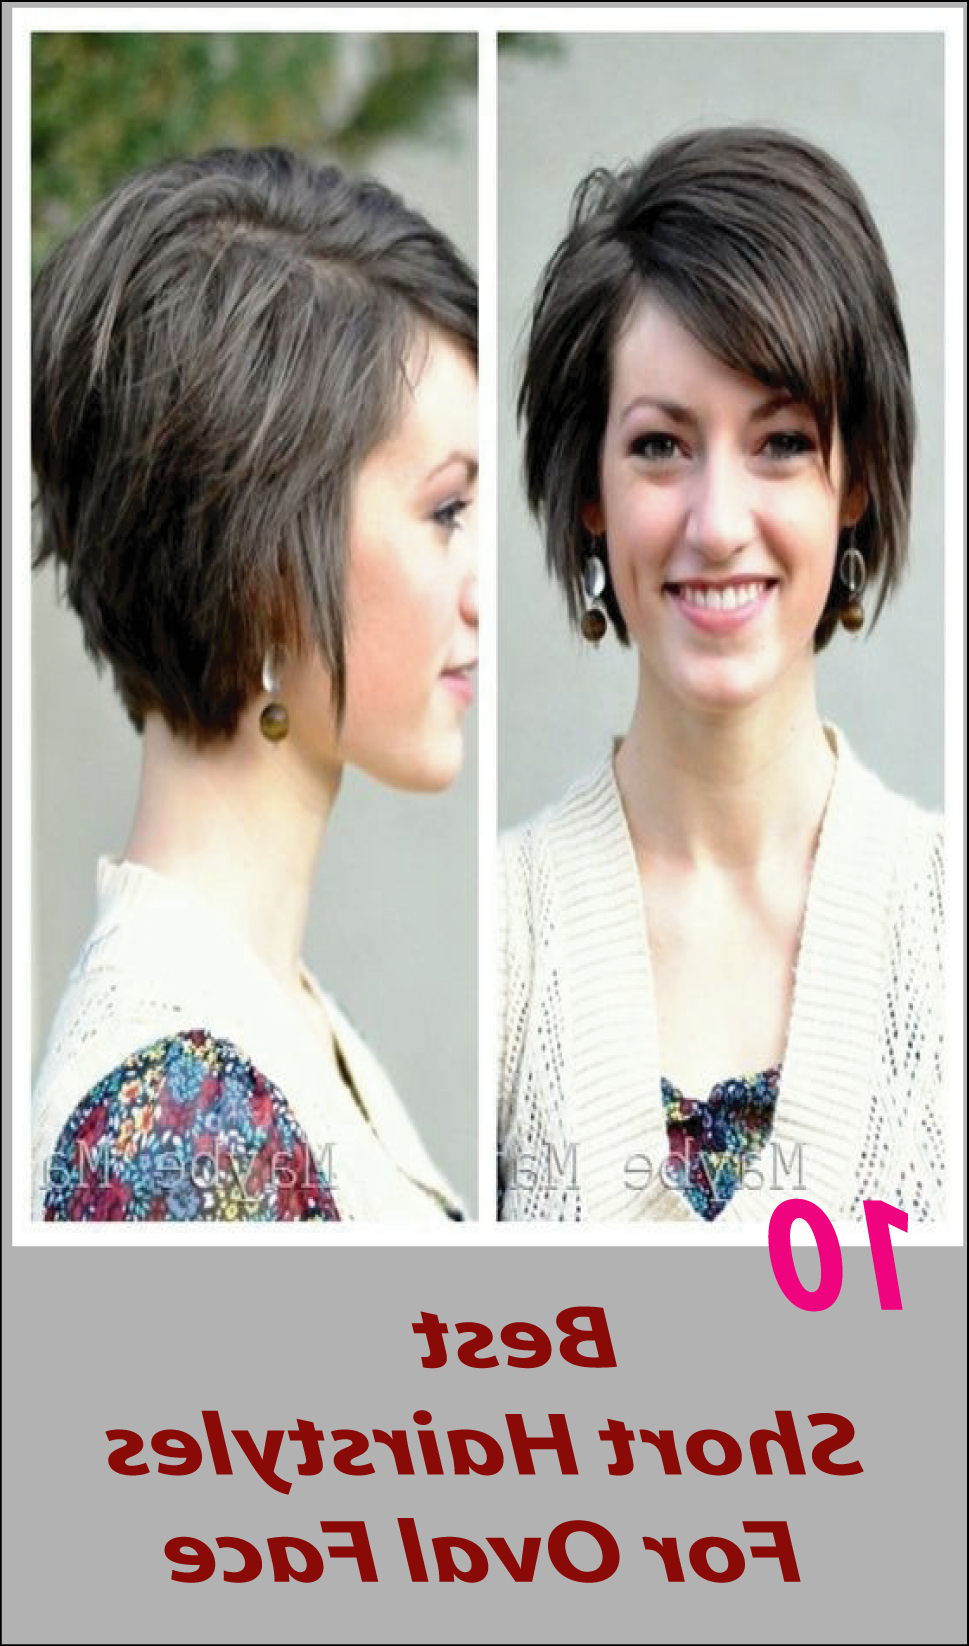 10 Best Short Hairstyles For Oval Face | Hair | Pinterest | Hair With Regard To Short Haircuts For Women With Oval Faces (View 13 of 25)